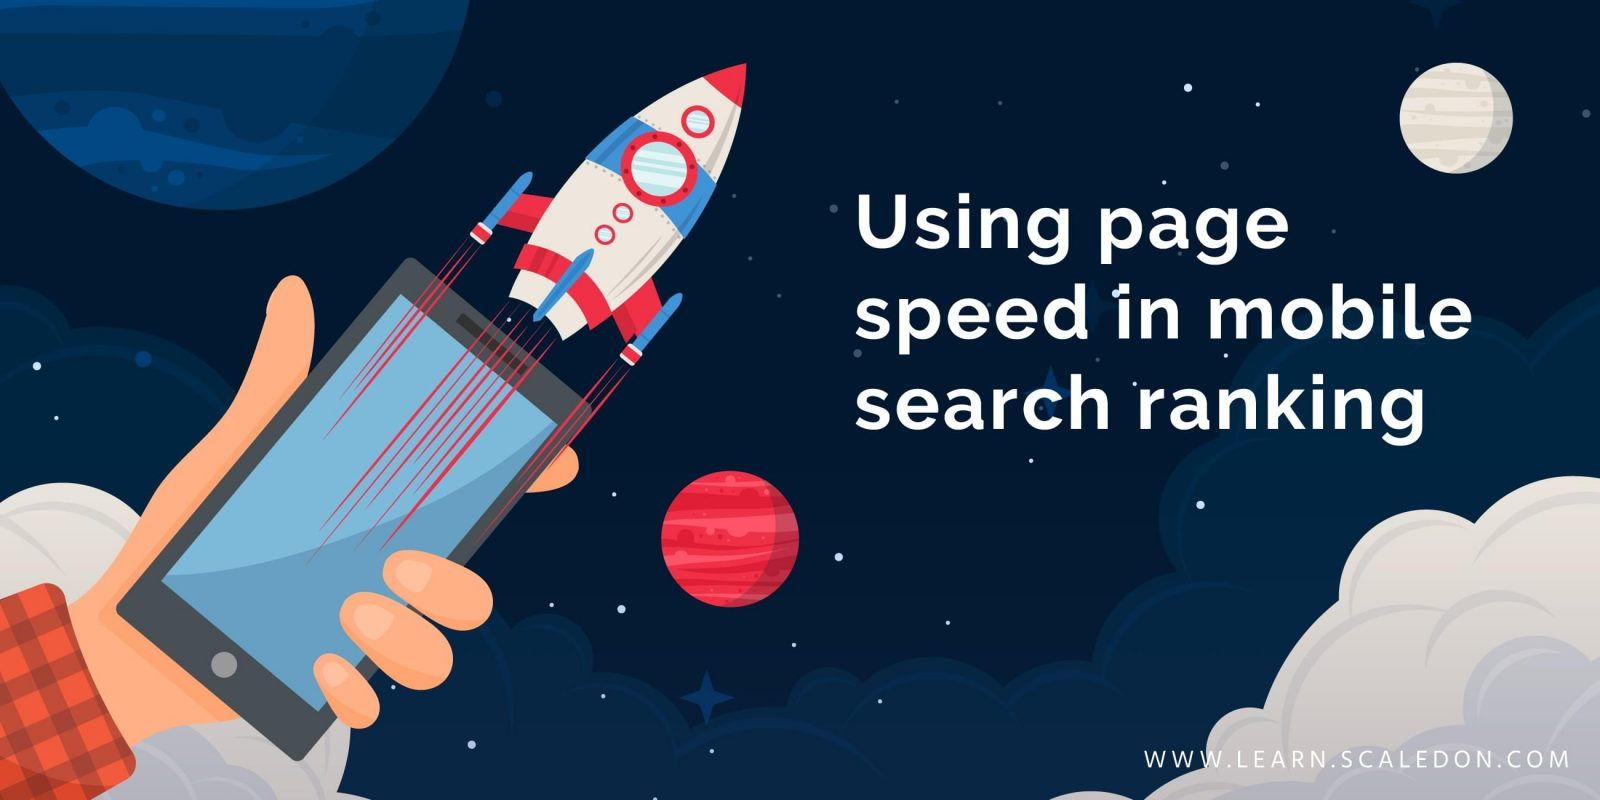 Using page speed in mobile search ranking